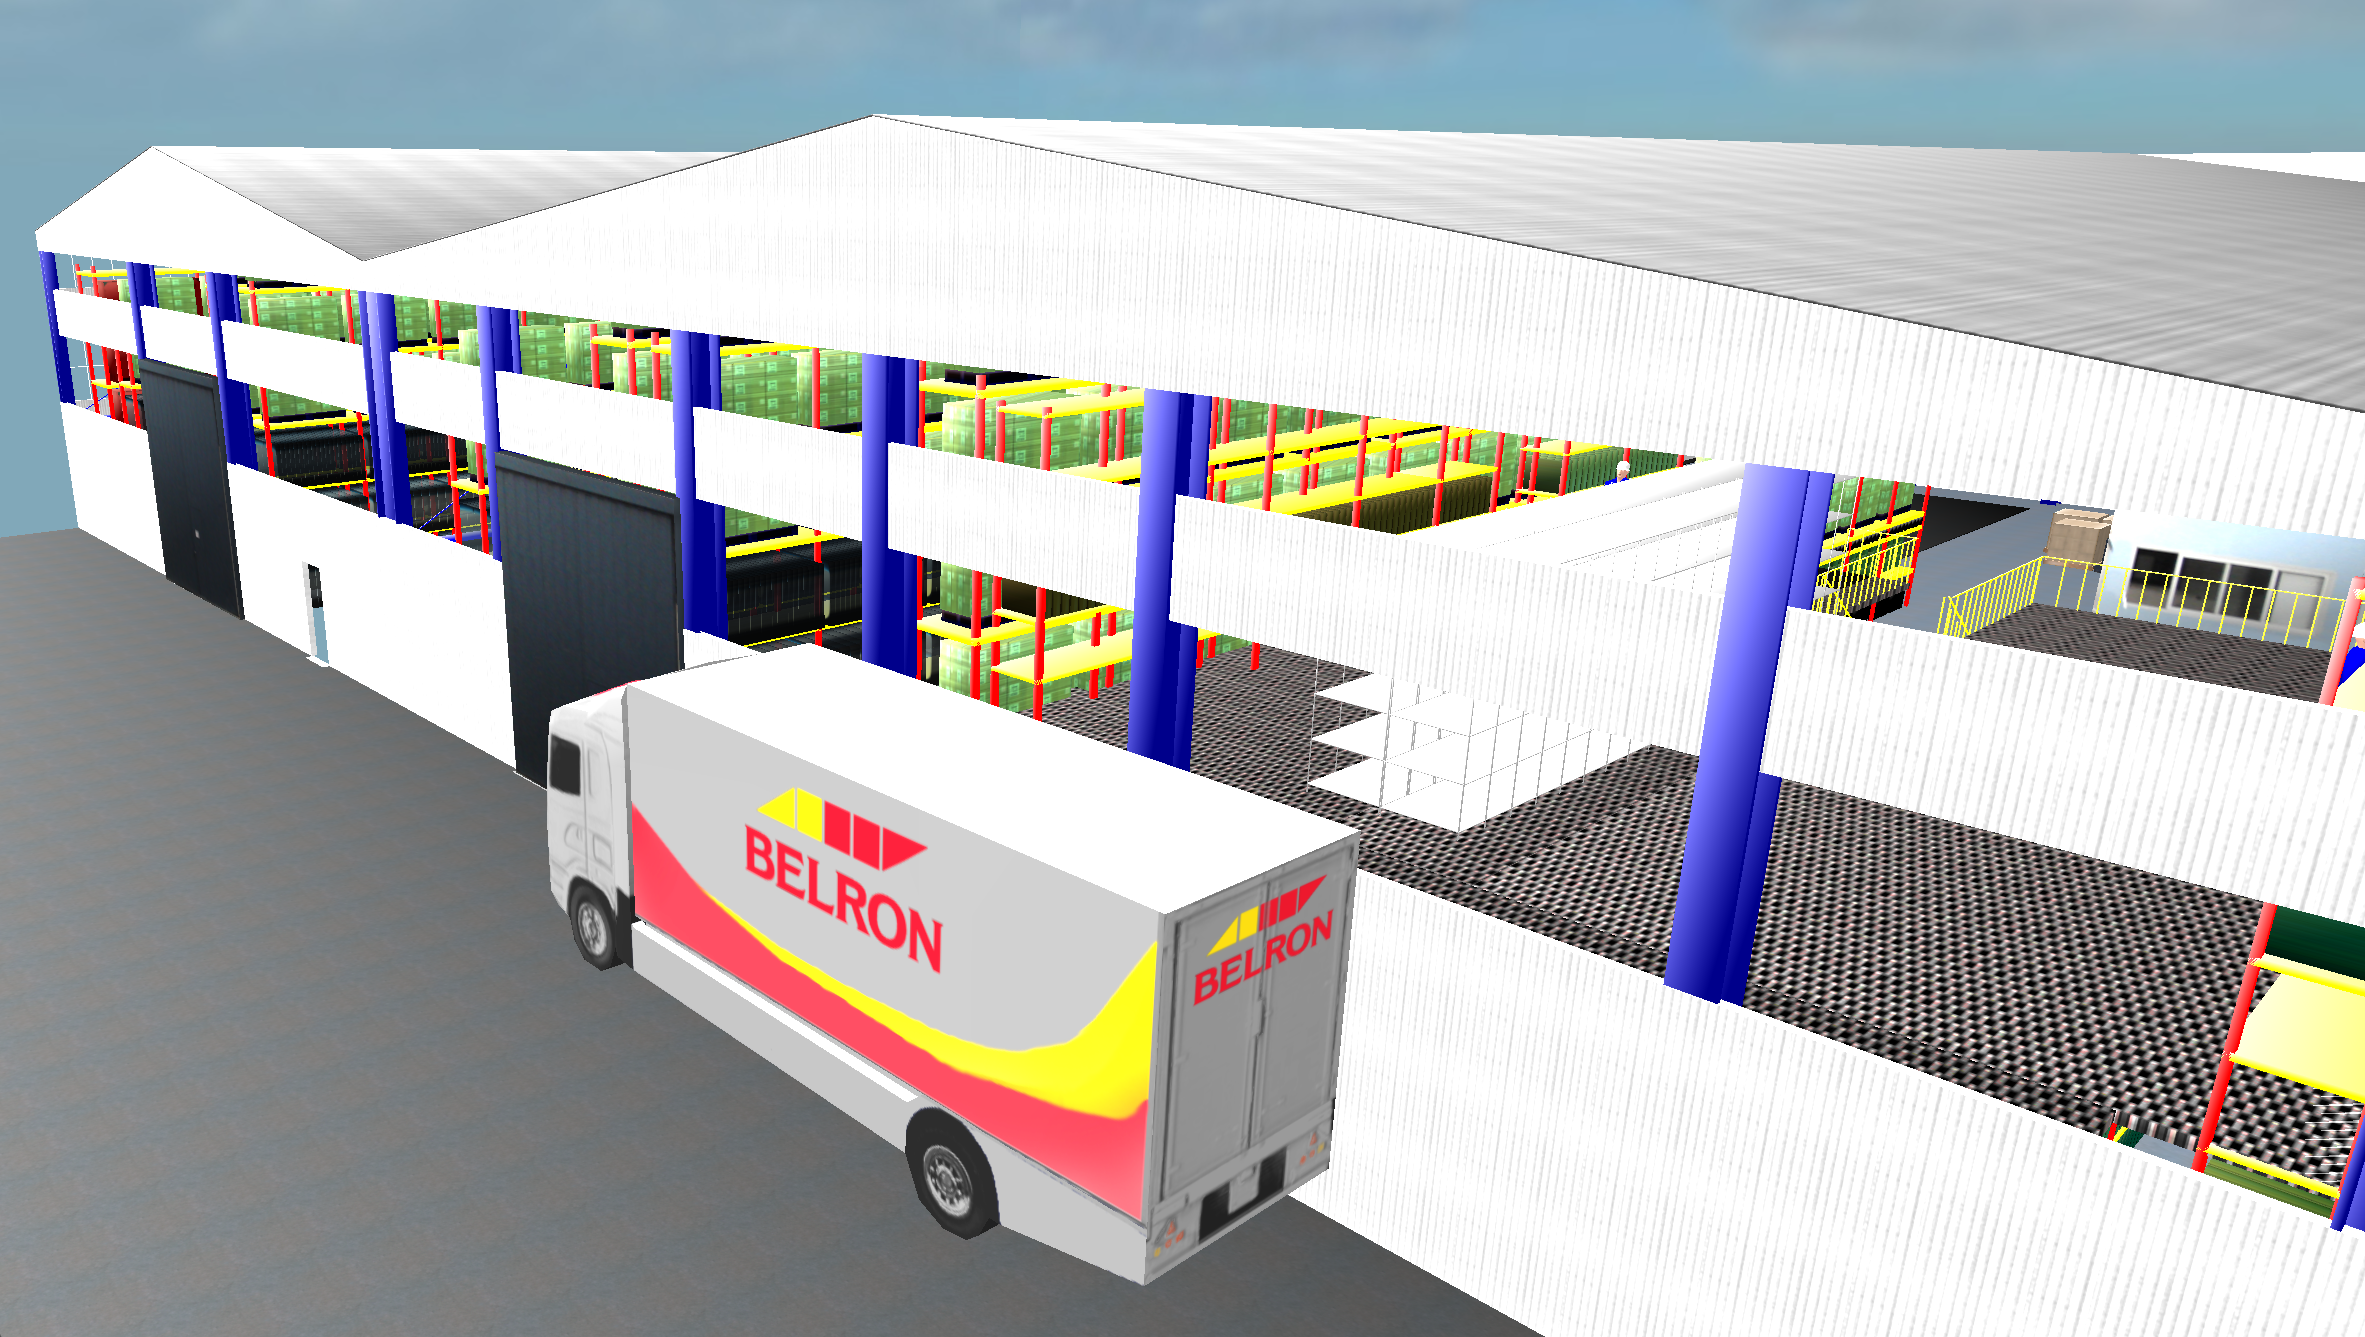 Belron Loading Area, Graphic by CLASS